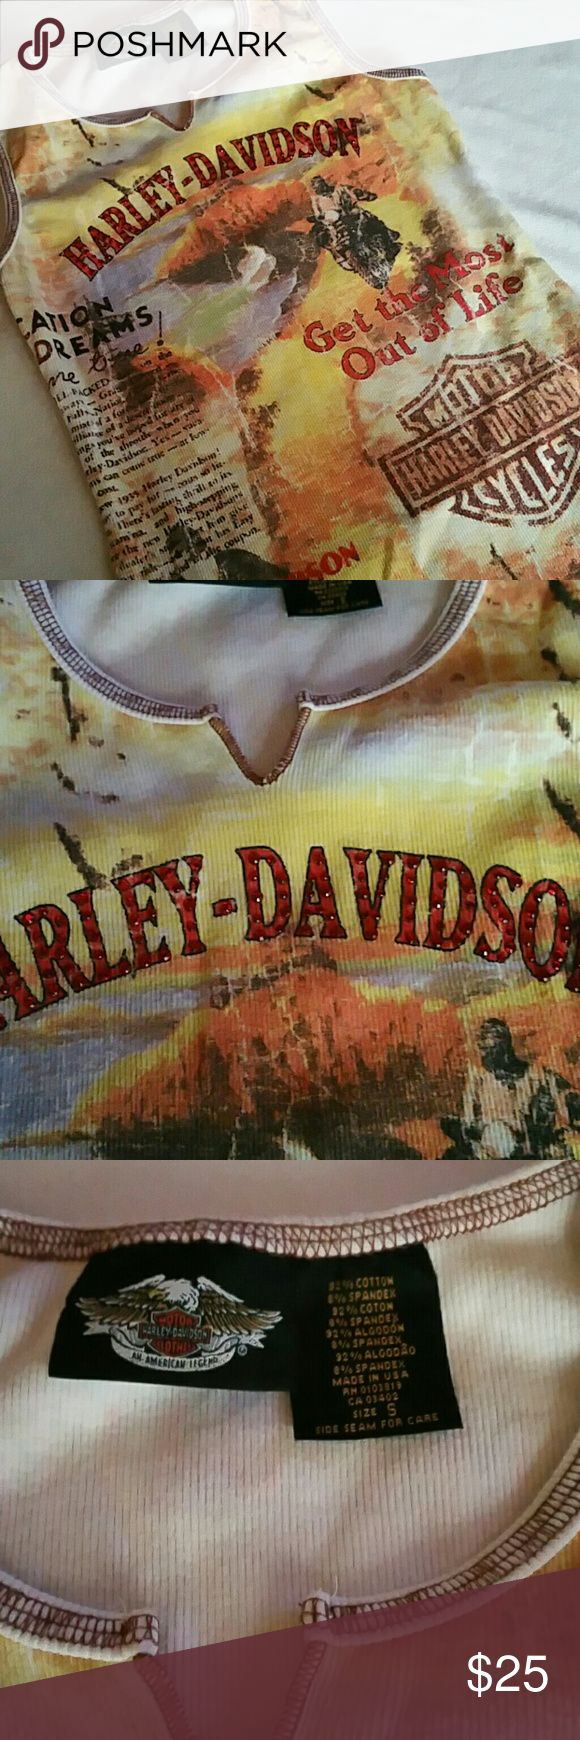 Harley Davidson Tank Top Small Vaca Dreams Like new, HD sleeveless top. No dealer print. Vacation Dreams graphic design. Rib knit, v neck purchased in Honolulu, Hawaii. Finished edges. Fits true to size, small. Please be sure to bundle to save on items and combined shipping! XOXO, Leslie Harley-Davidson Tops Tank Tops